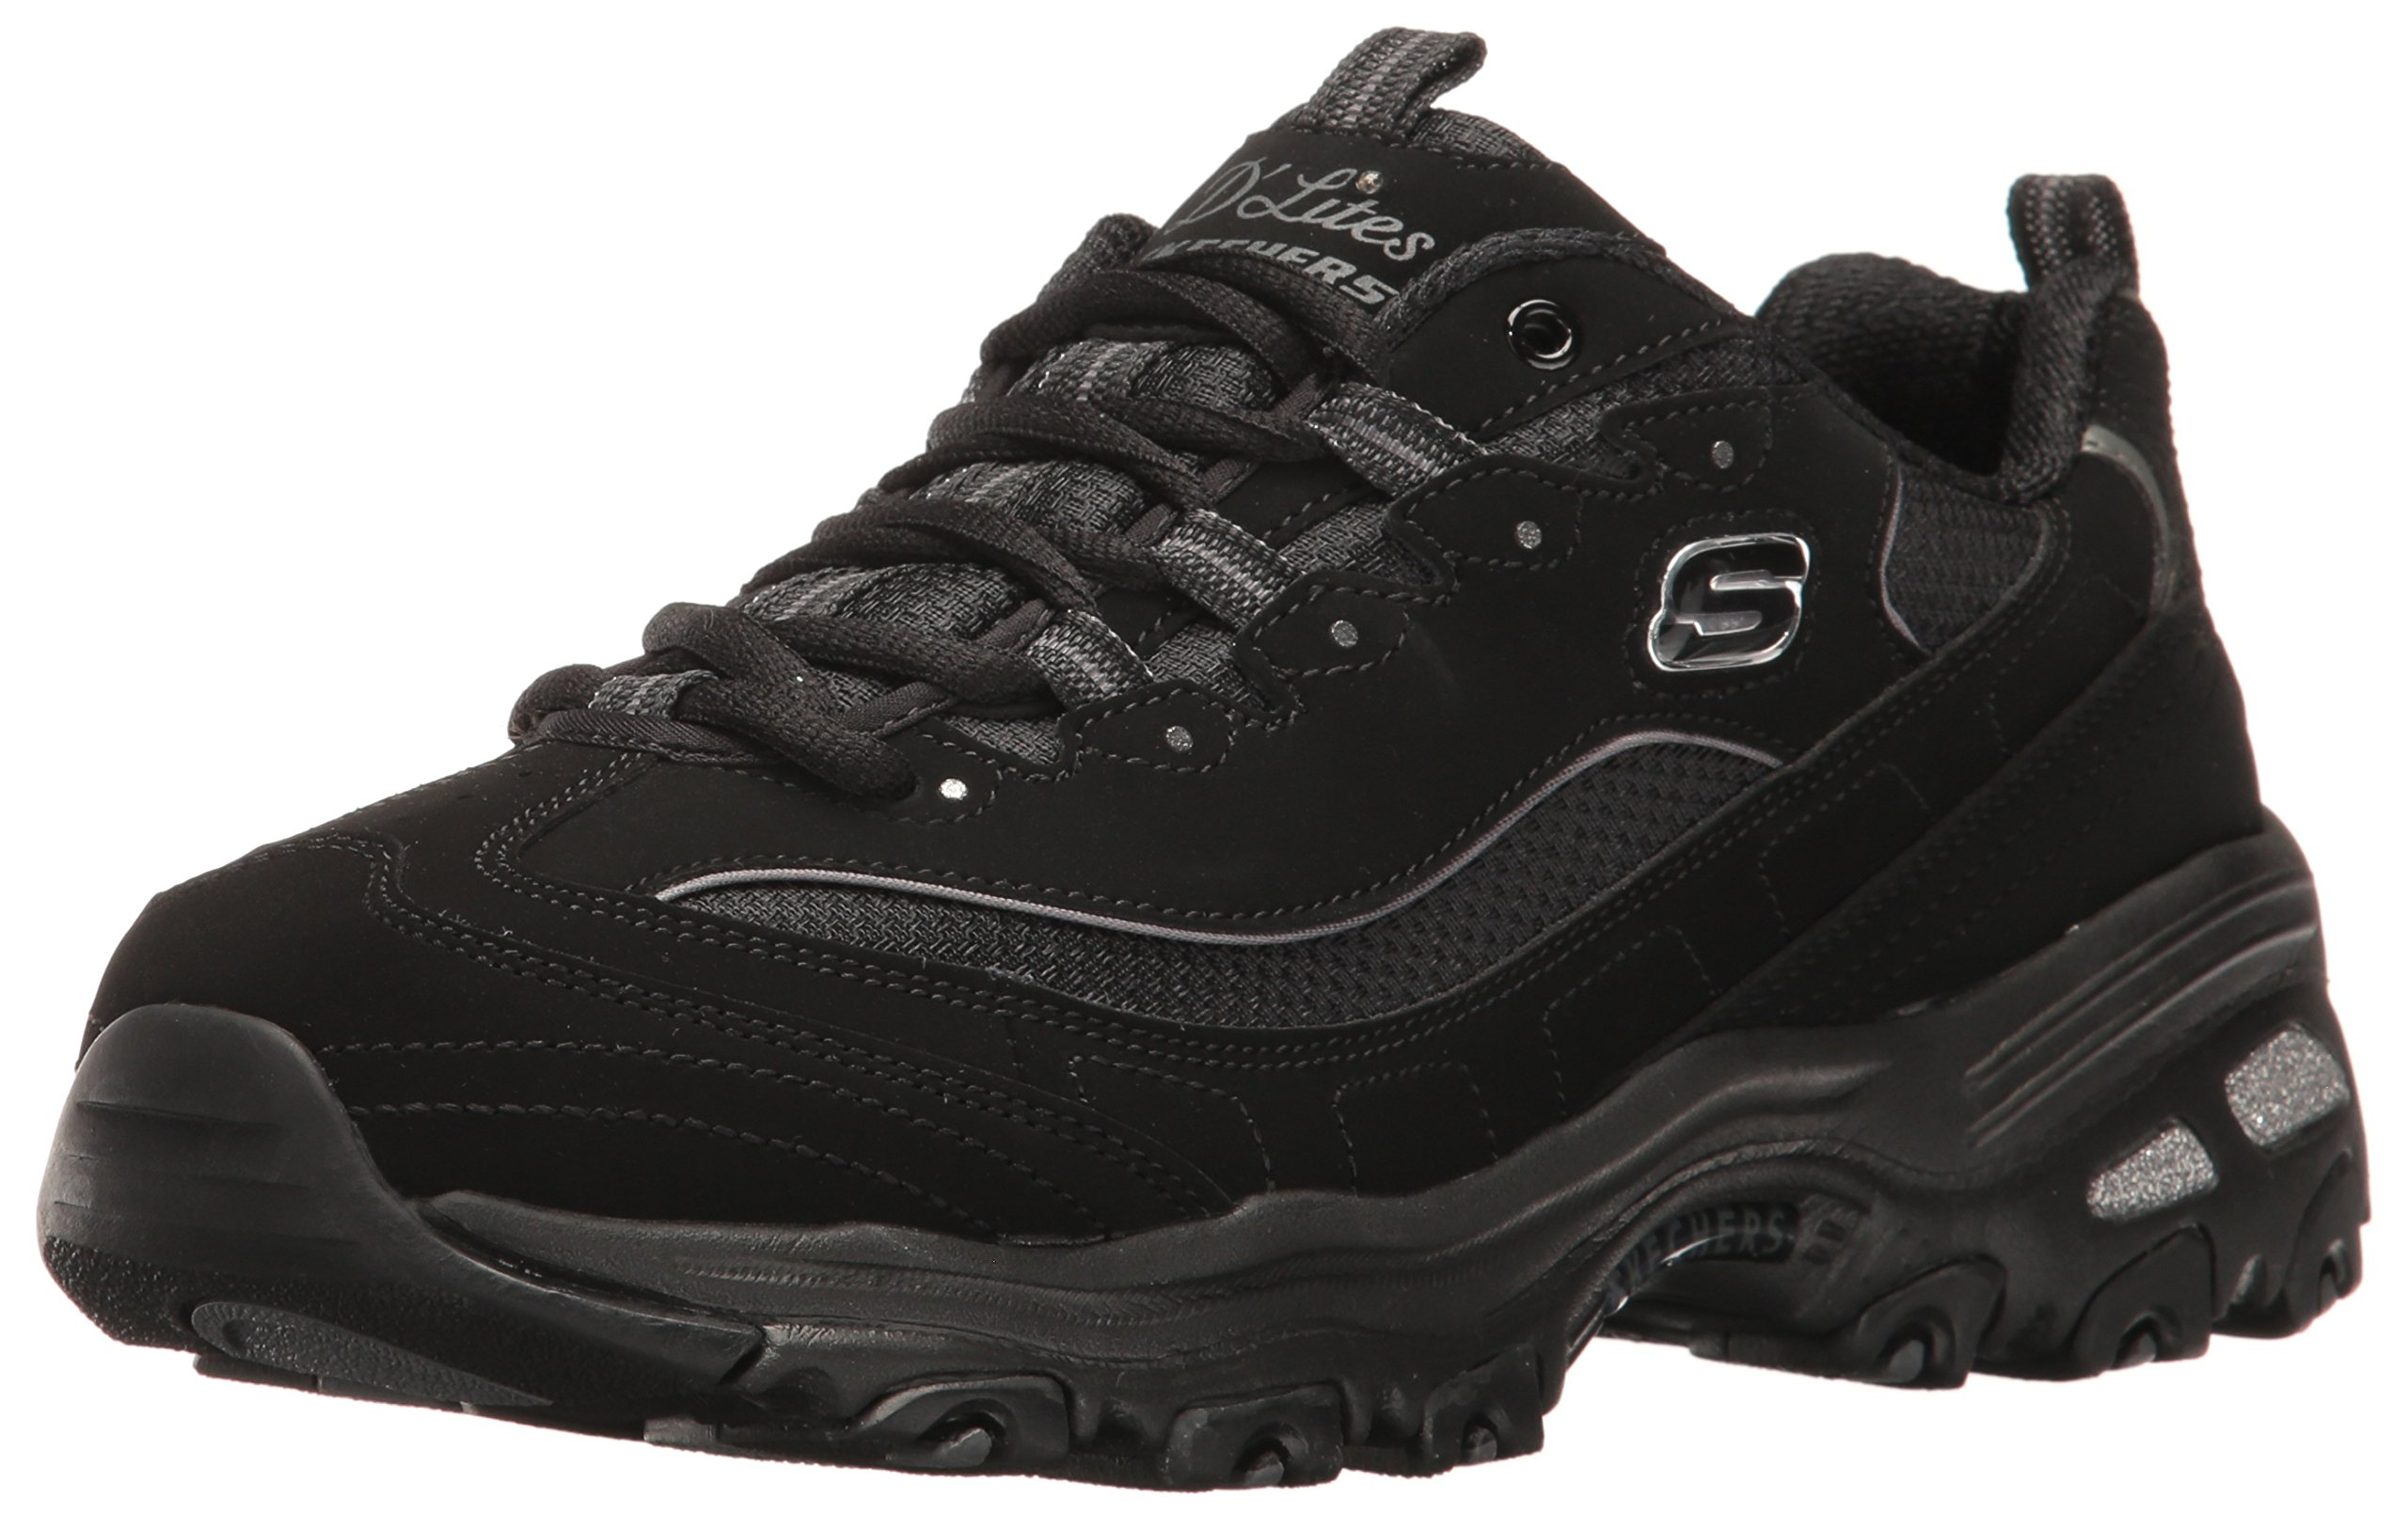 Skechers Sport Women's D'Lites Memory Foam Lace-up Sneaker,Black,8.5 W US